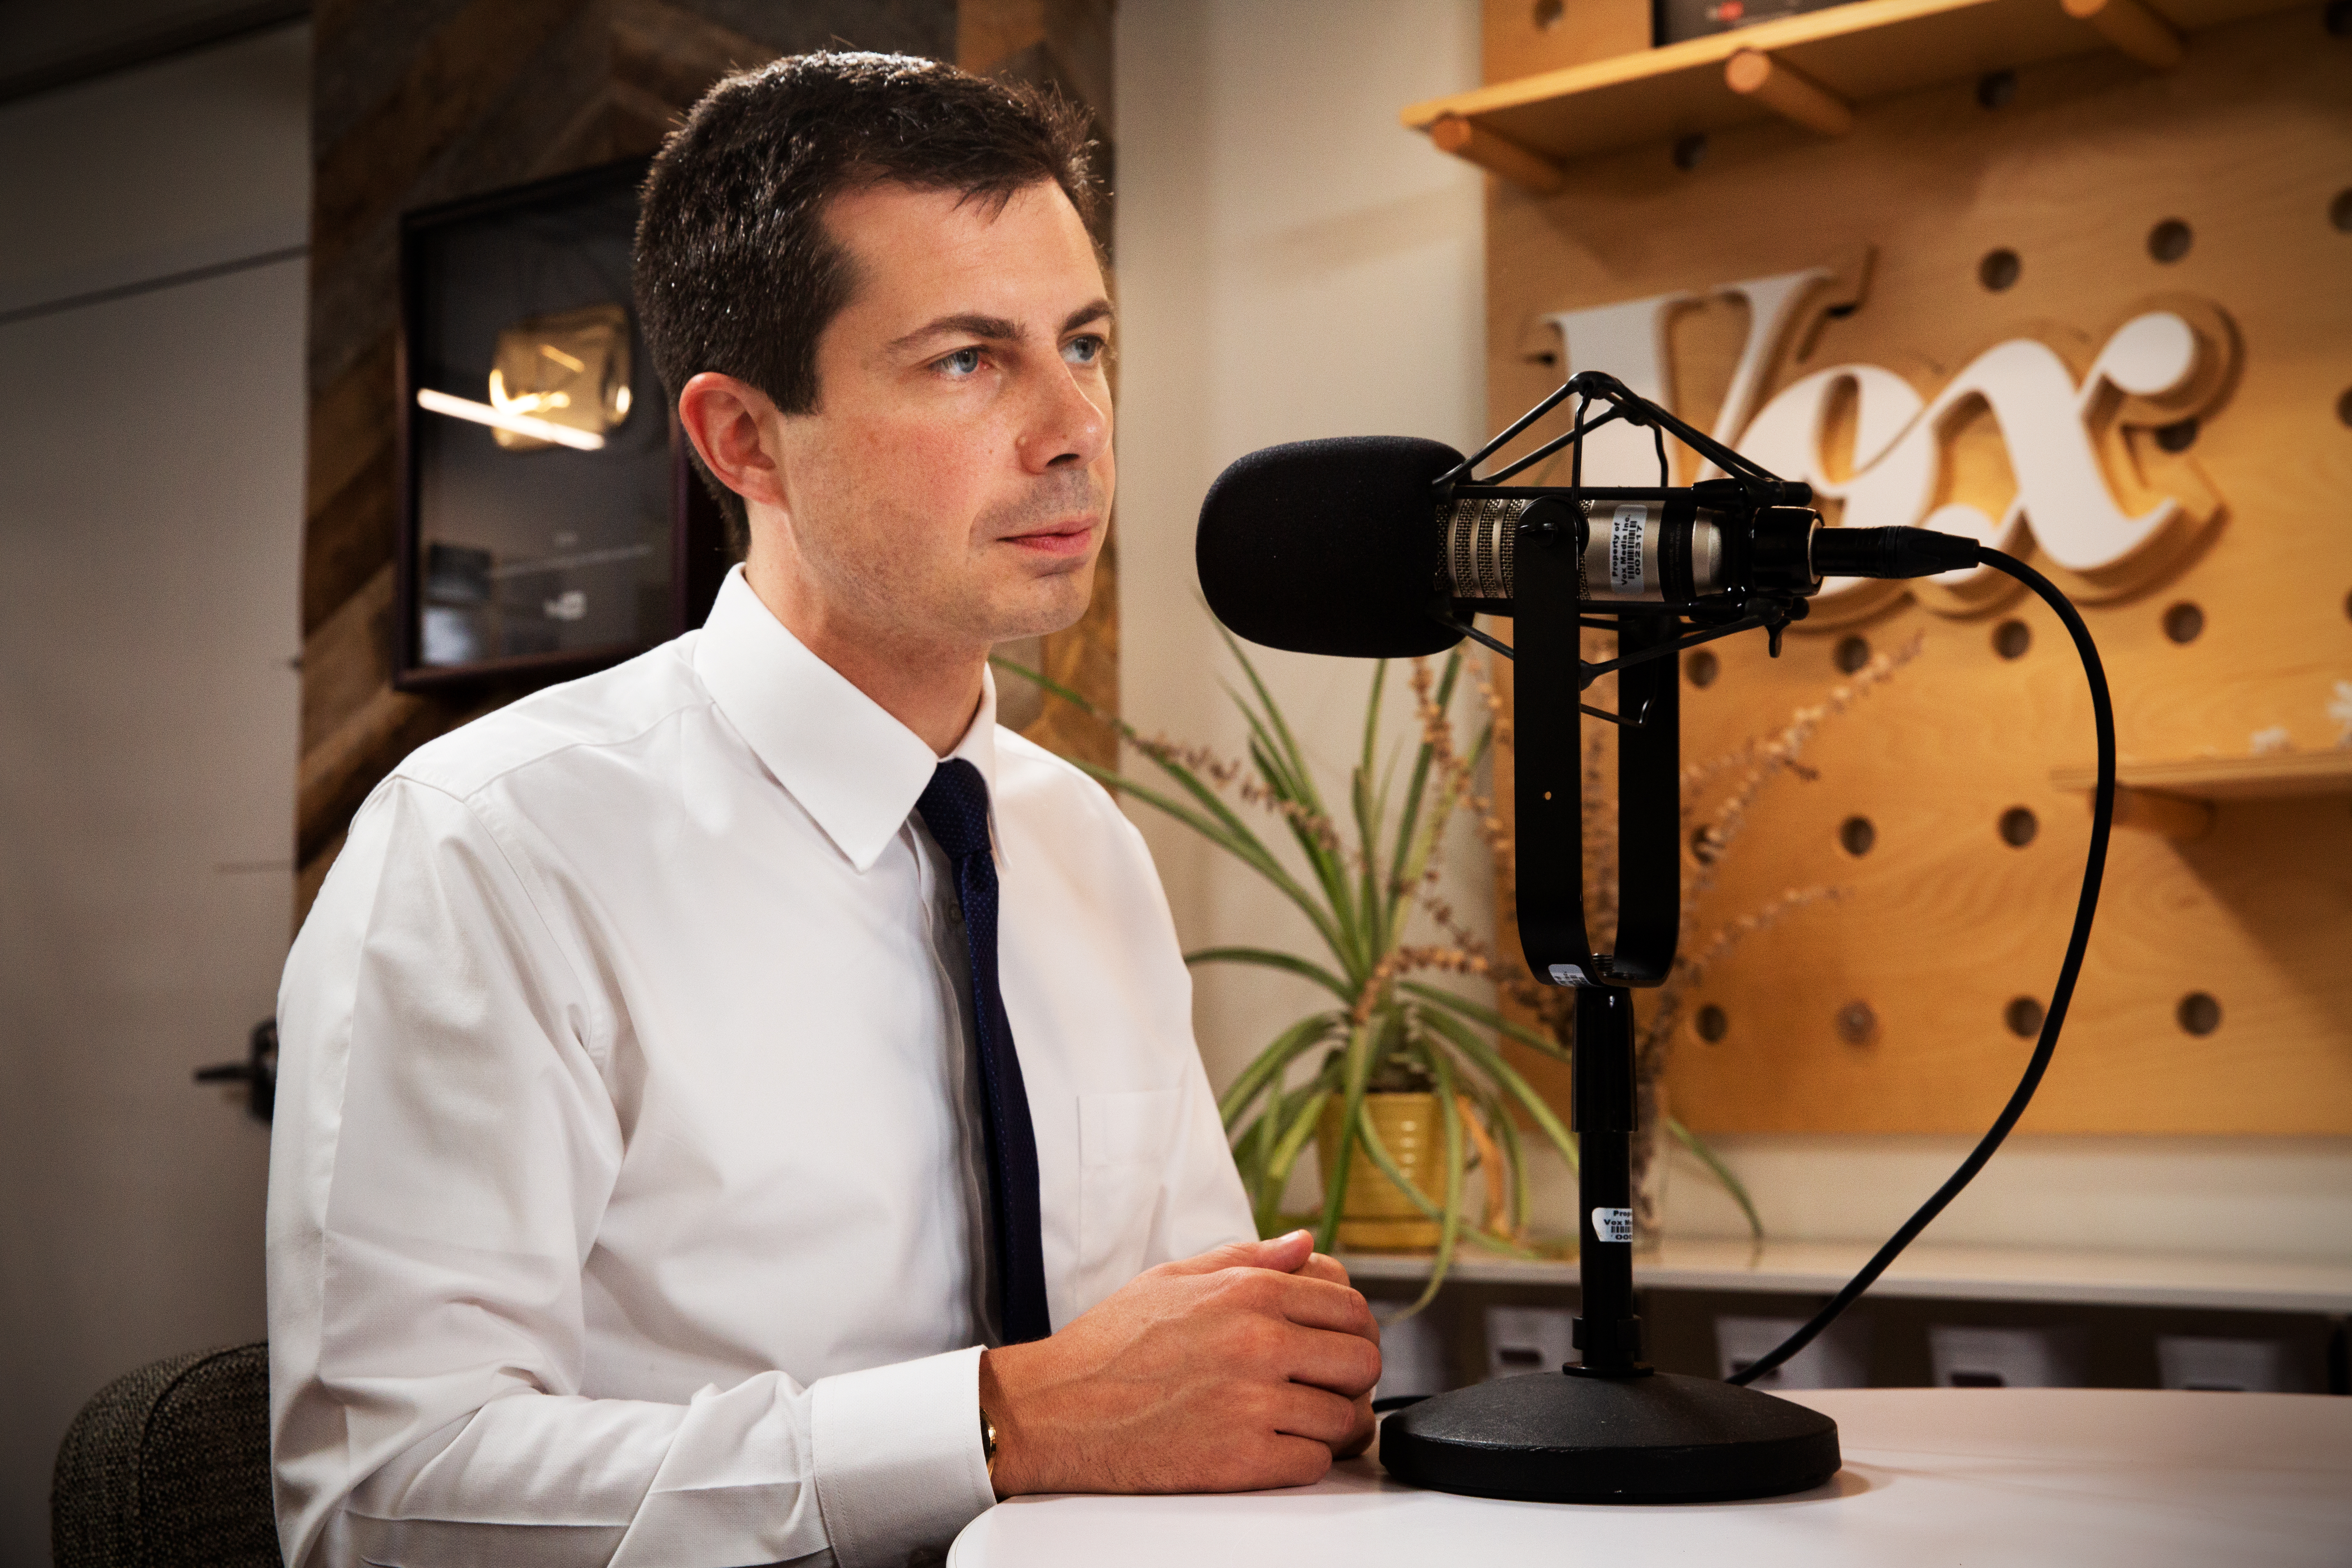 Mayor Pete Buttigieg talks about systemic racism, regulating tech, and the divided Democratic Party on Recode Decode